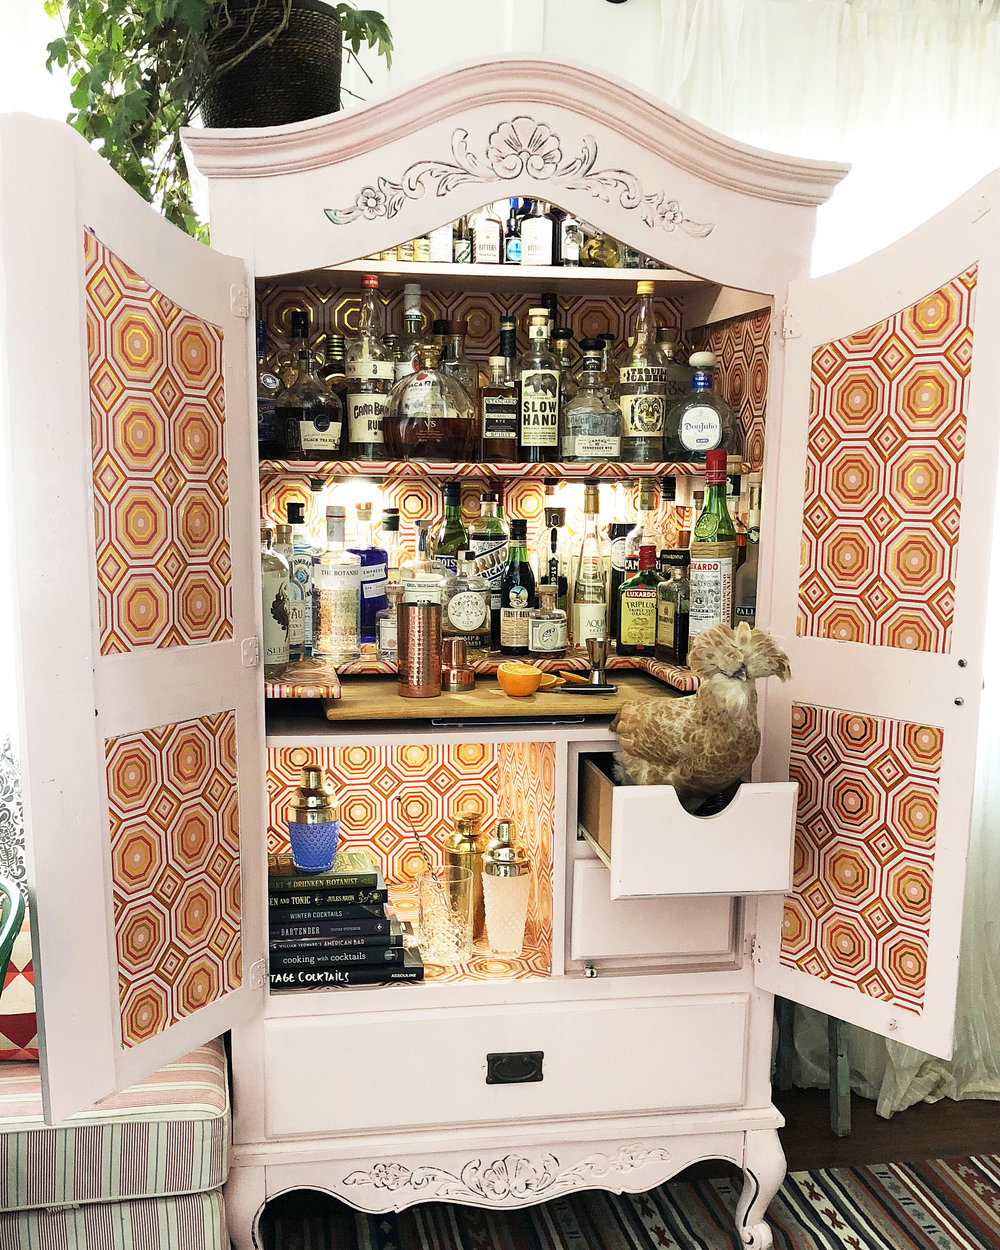 The Barmoire | drinkingwithchickens.com